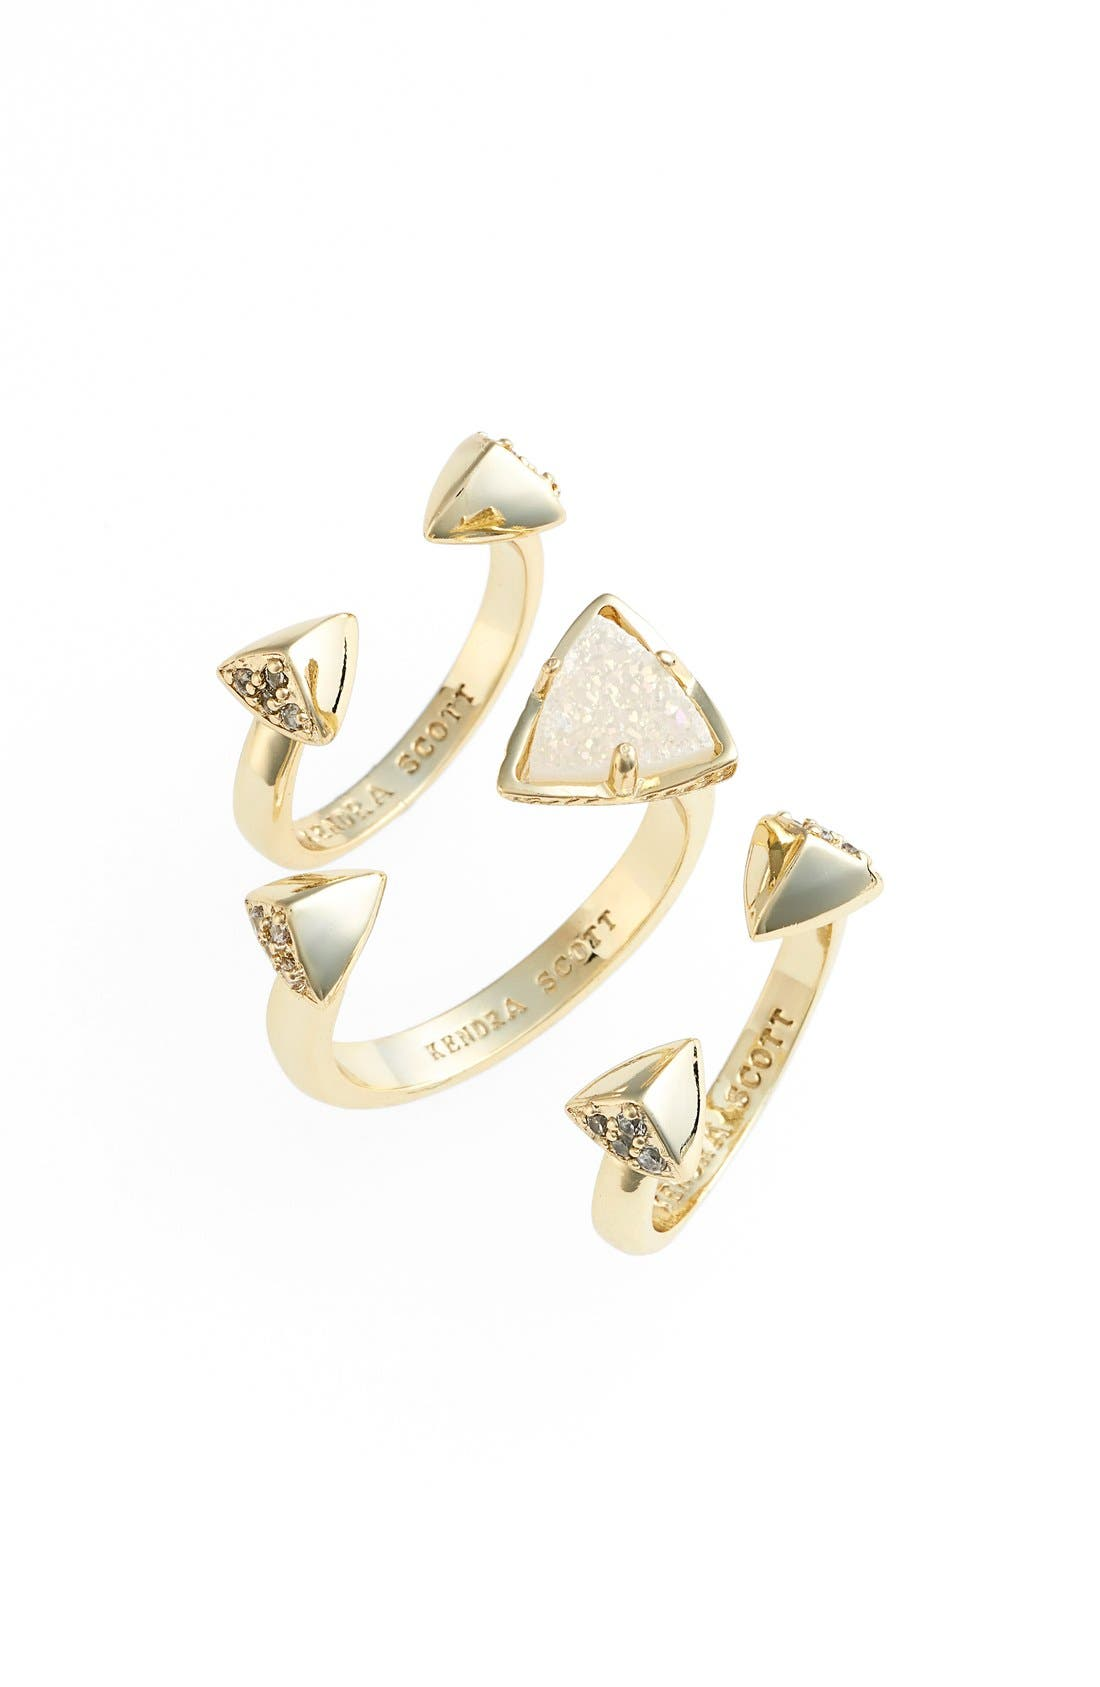 Alternate Image 1 Selected - Kendra Scott 'Brennan' Spiked Open Ring & Midi Rings (Set of 3)